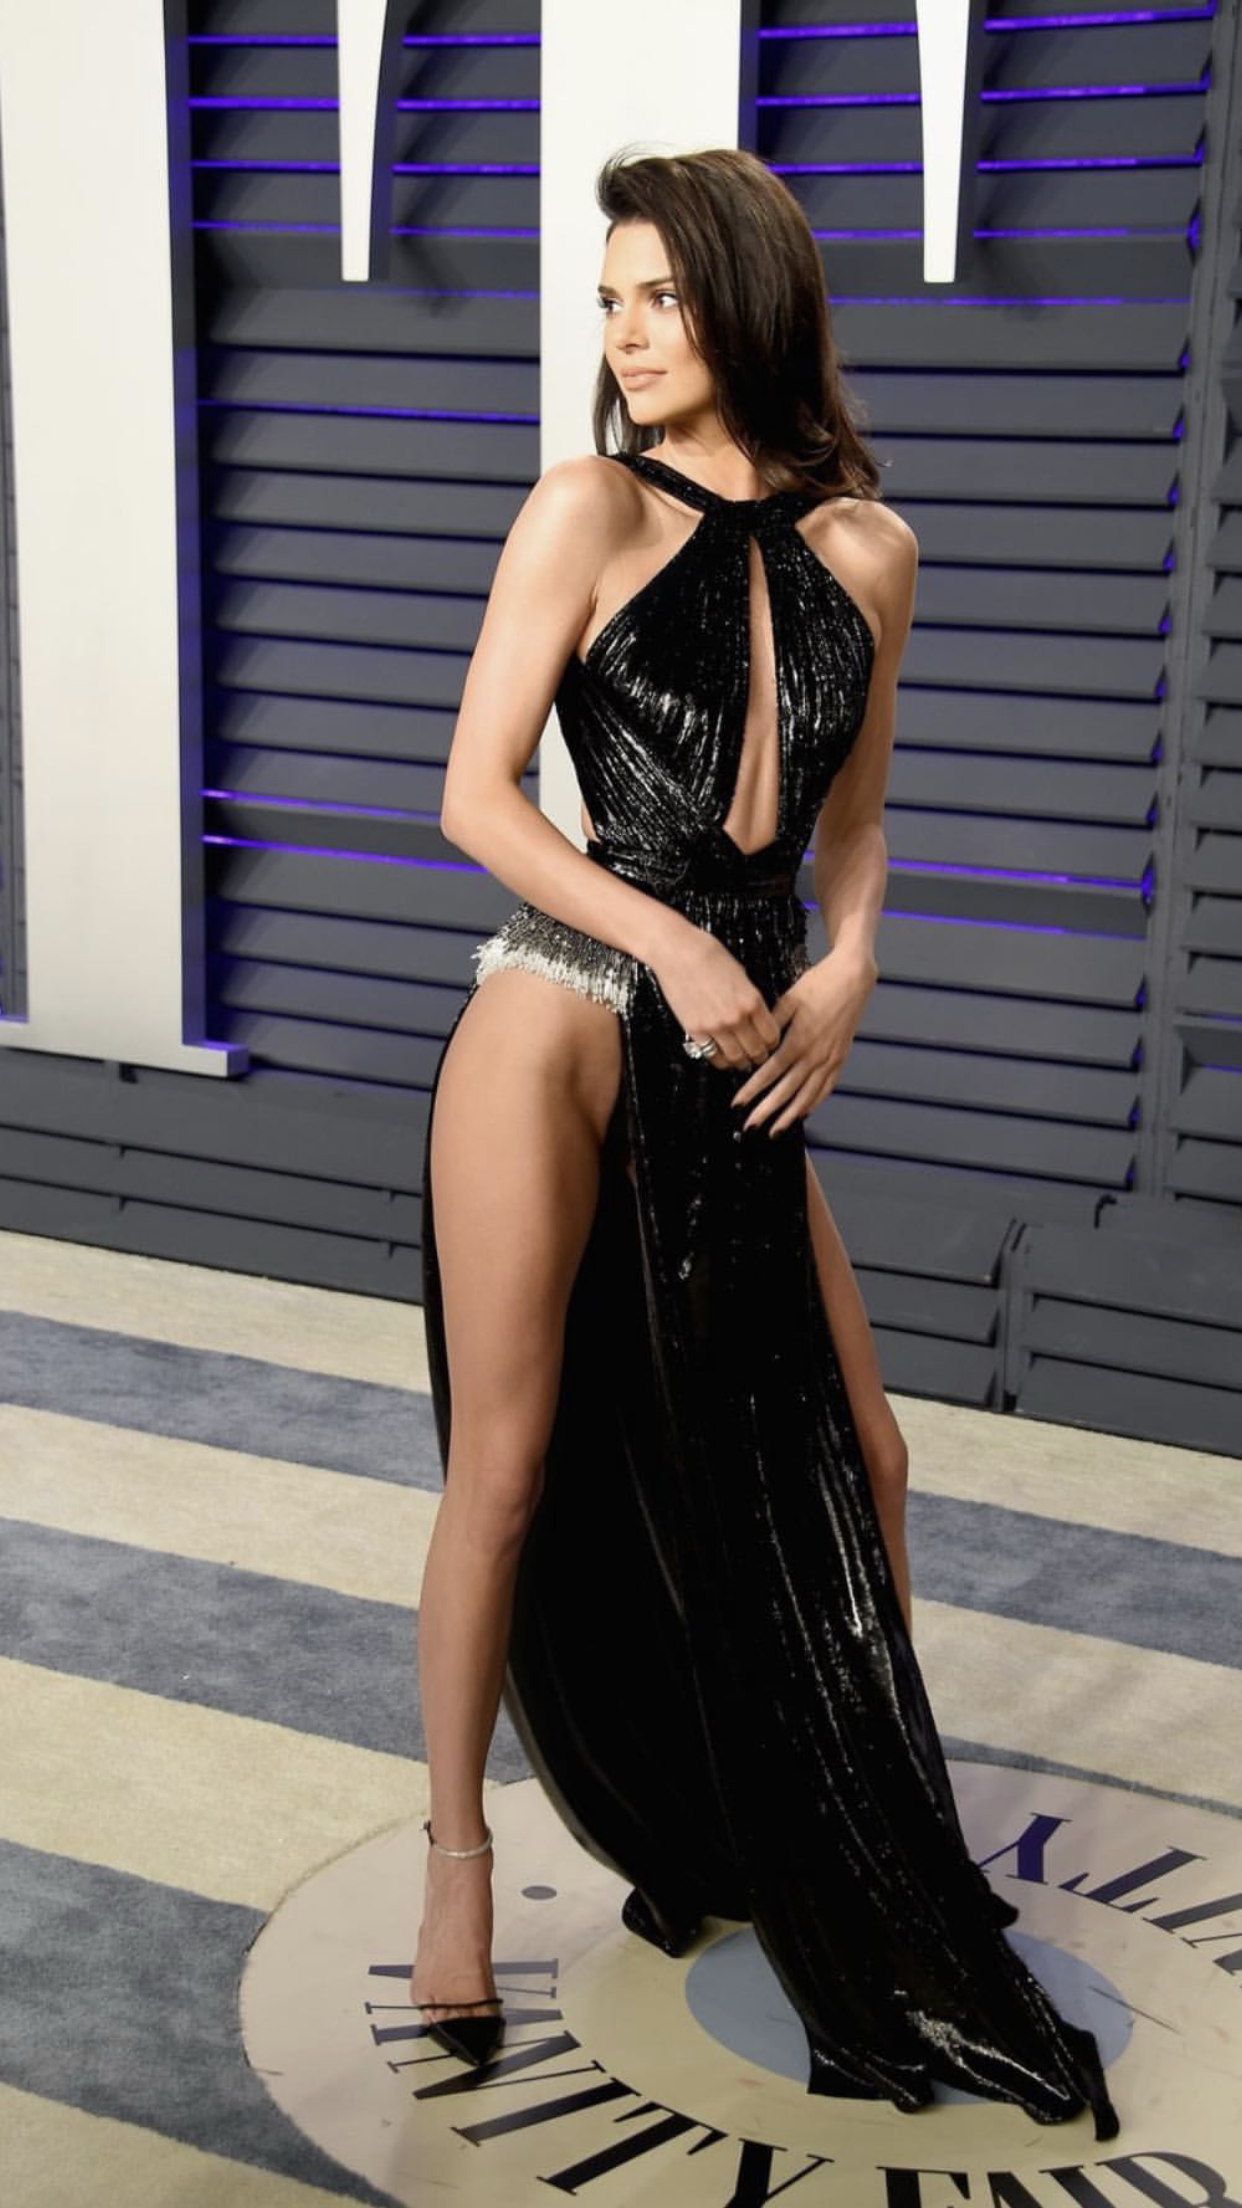 Kylie Jenner latex dress. 2018-2019 celebrityes photos leaks!